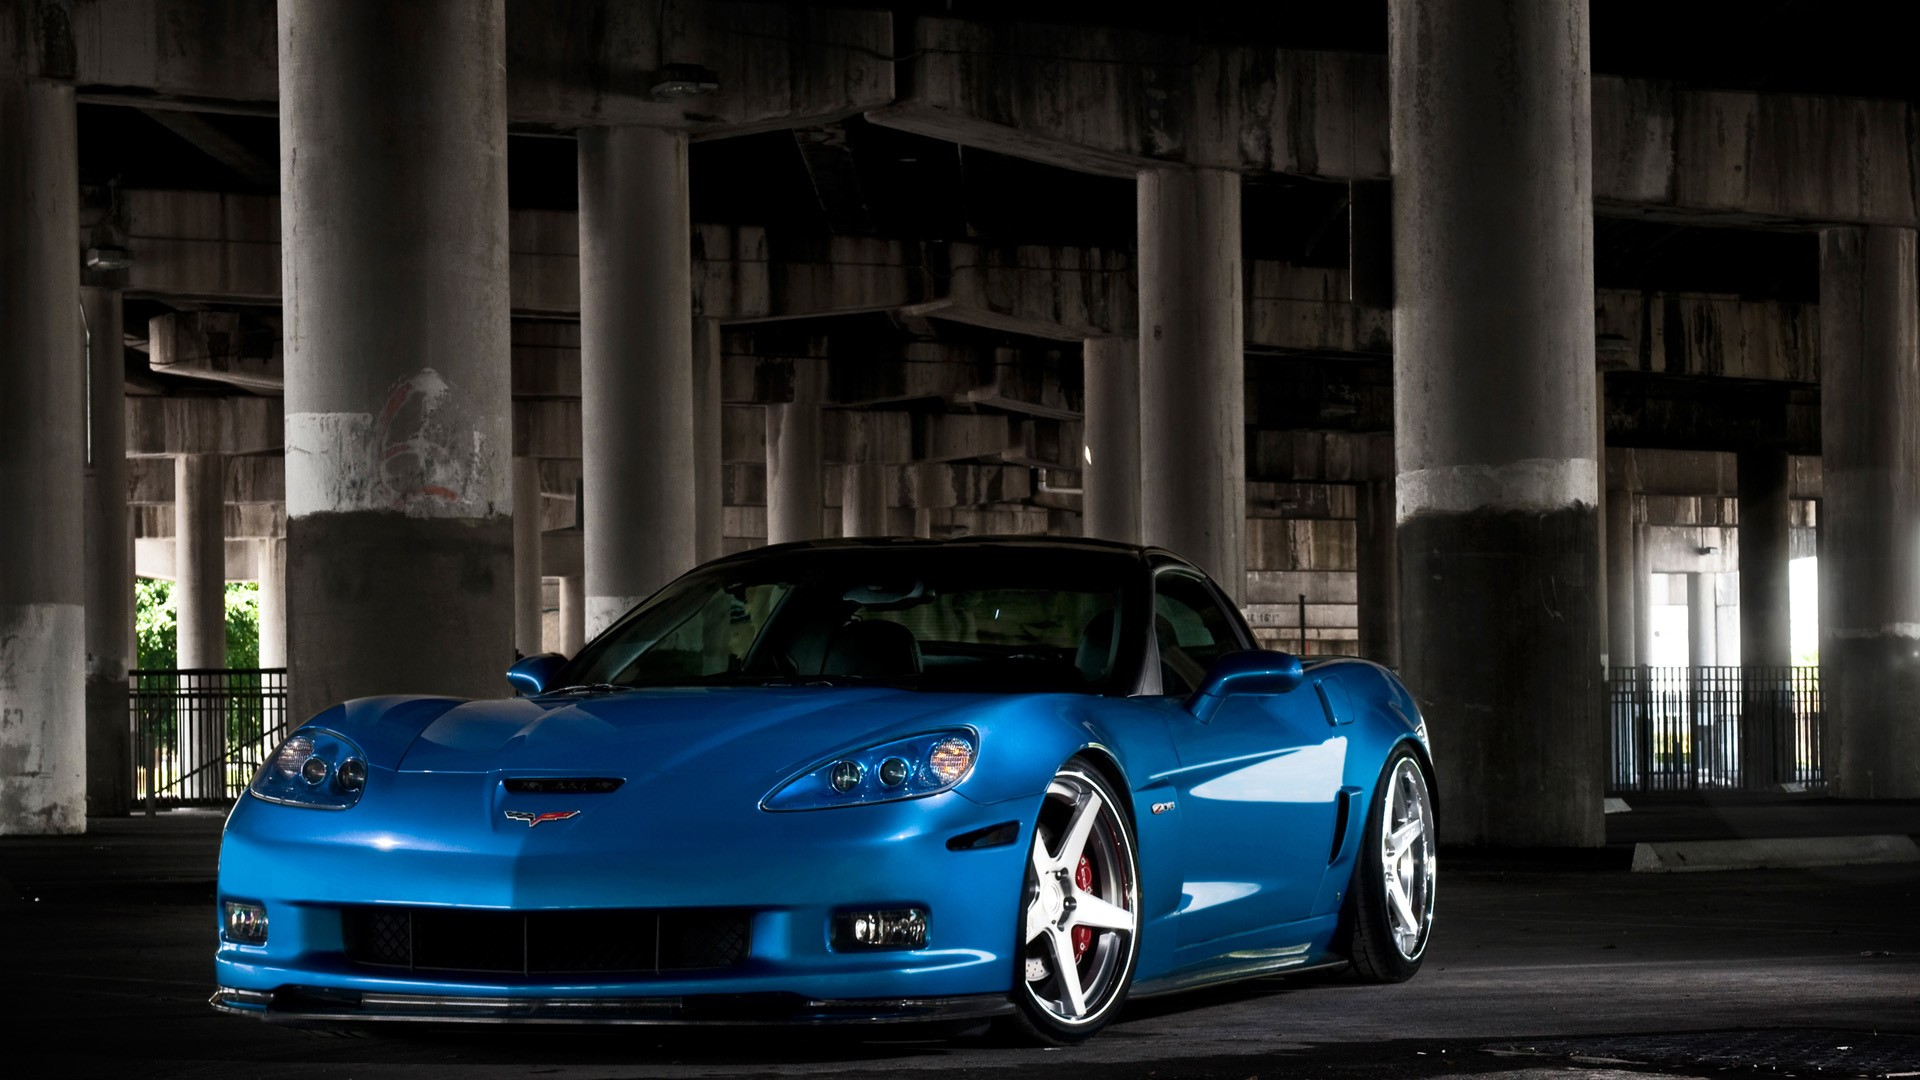 Chevrolet Corvette C6 Zr1 Car Wallpapers Hd Wallpapers